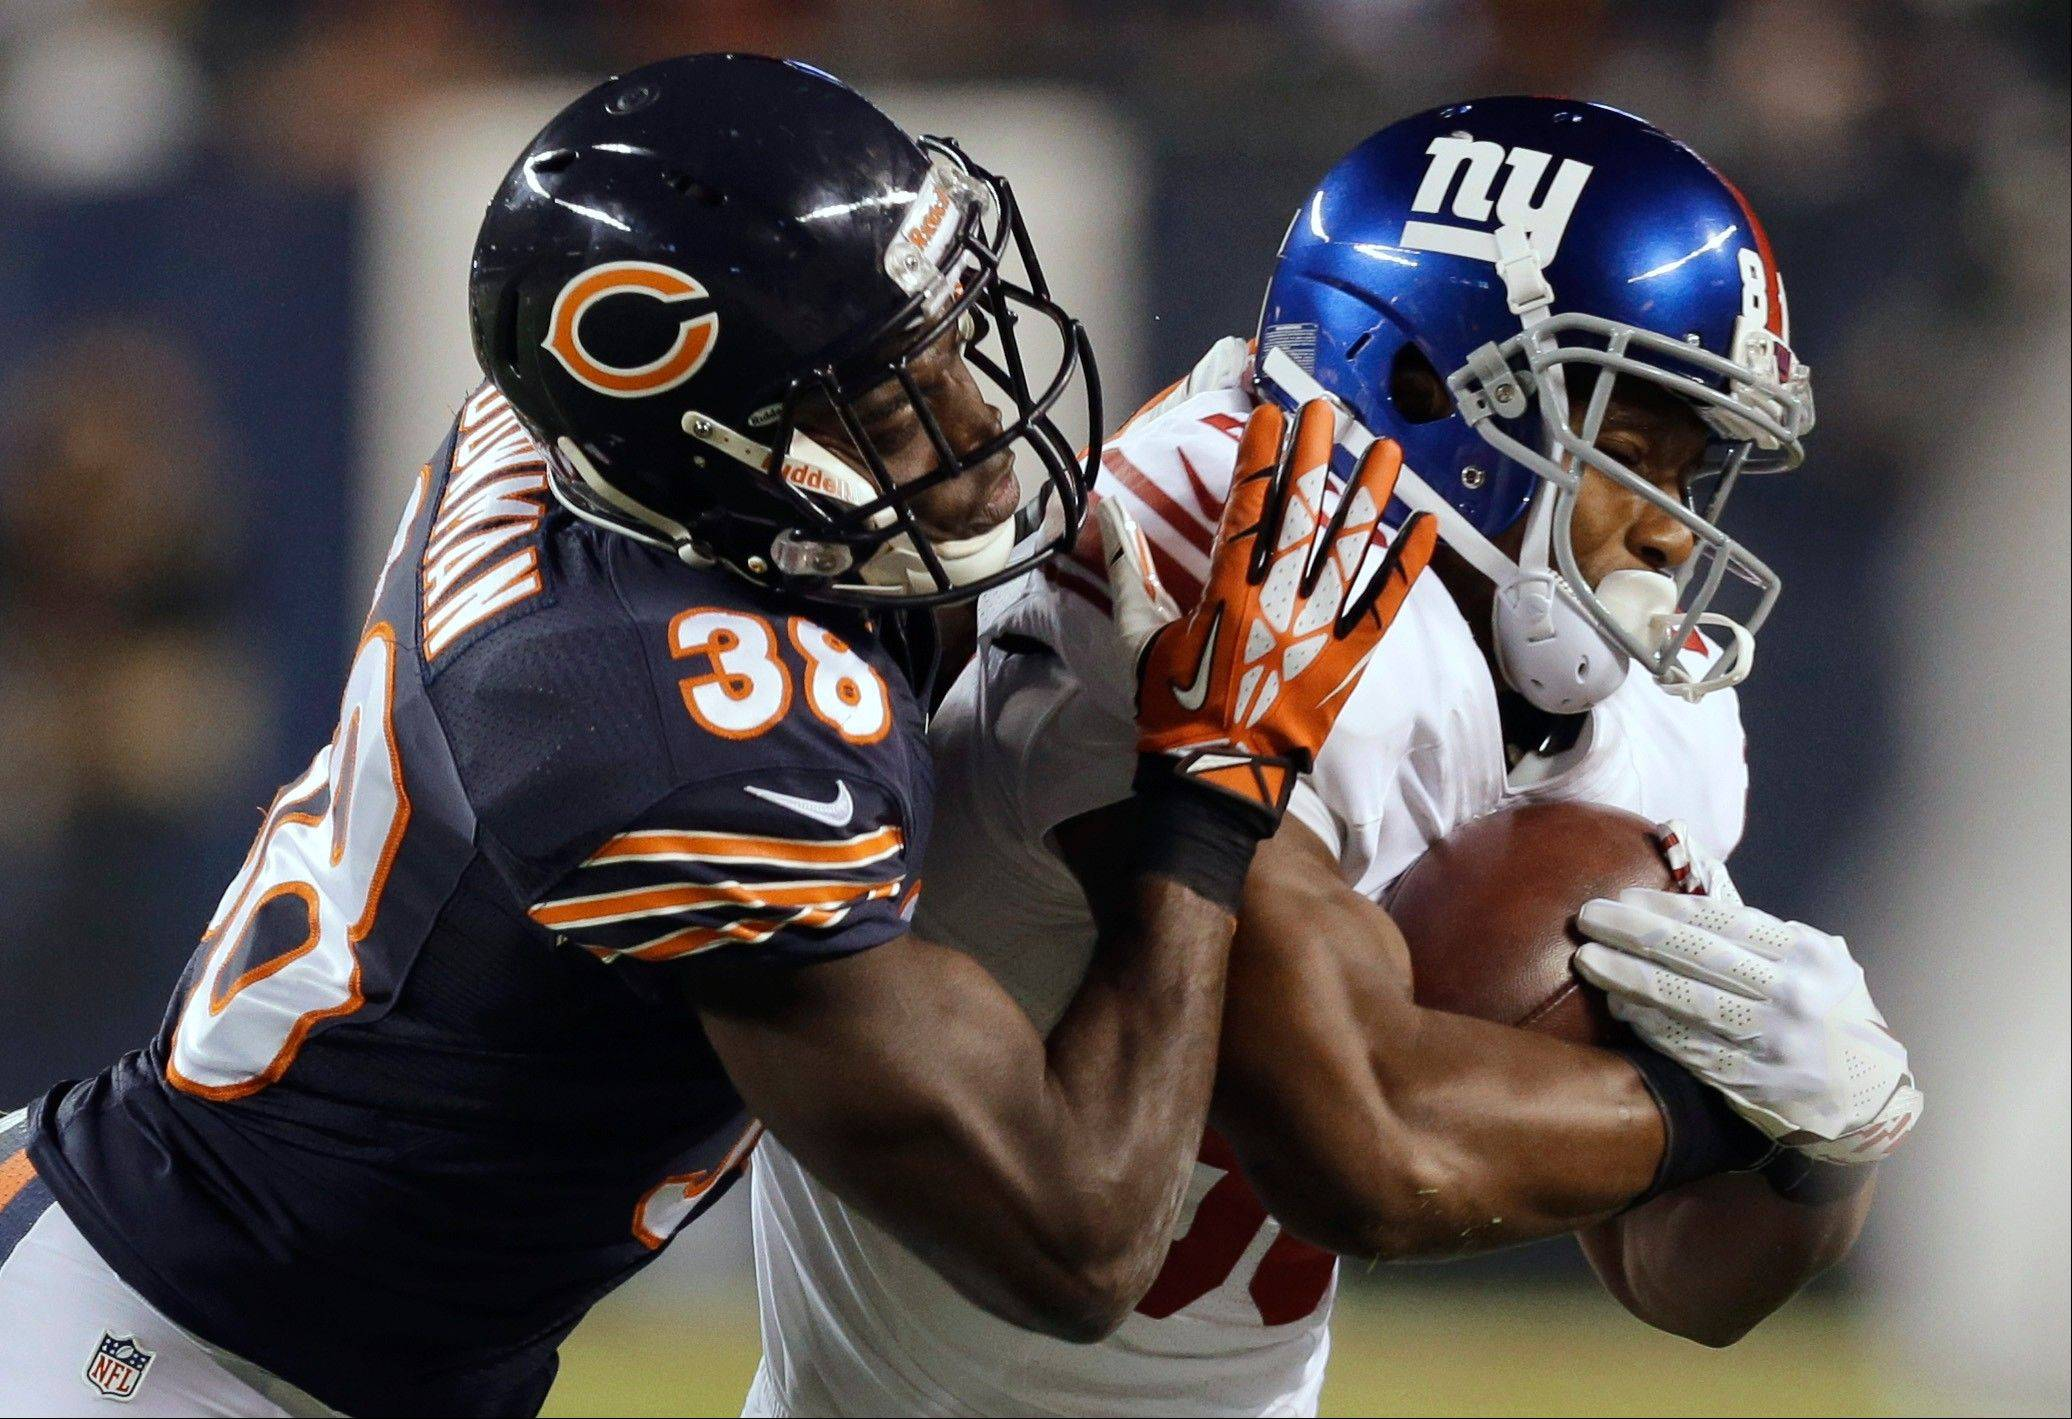 Chicago Bears defensive back Zack Bowman (38) tackles New York Giants wide receiver Victor Cruz during the first half of an NFL football game, Thursday, Oct. 10, 2013, in Chicago.